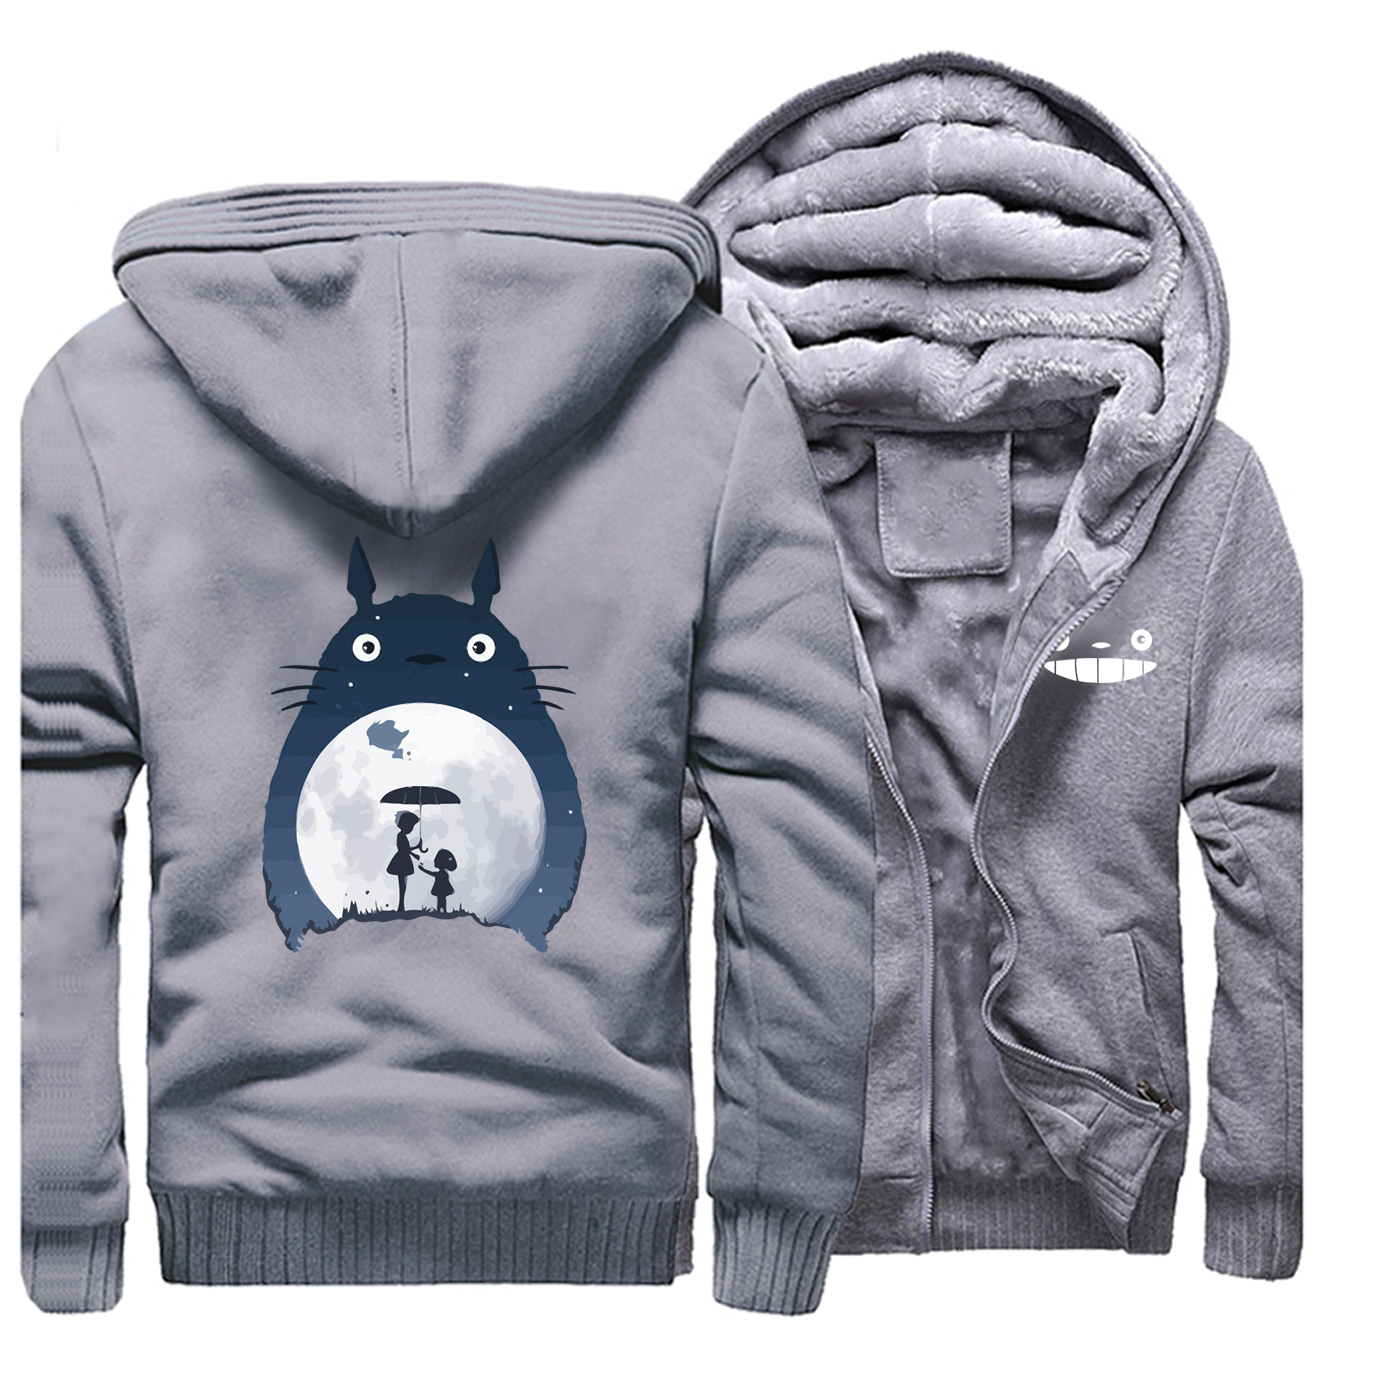 Tonari No Totoro Men Thick Hoodies Sweatshirts Fleece Warm Zipper Coa Vintage Japanese Anime Jacket Streetwear Winter Hoodie